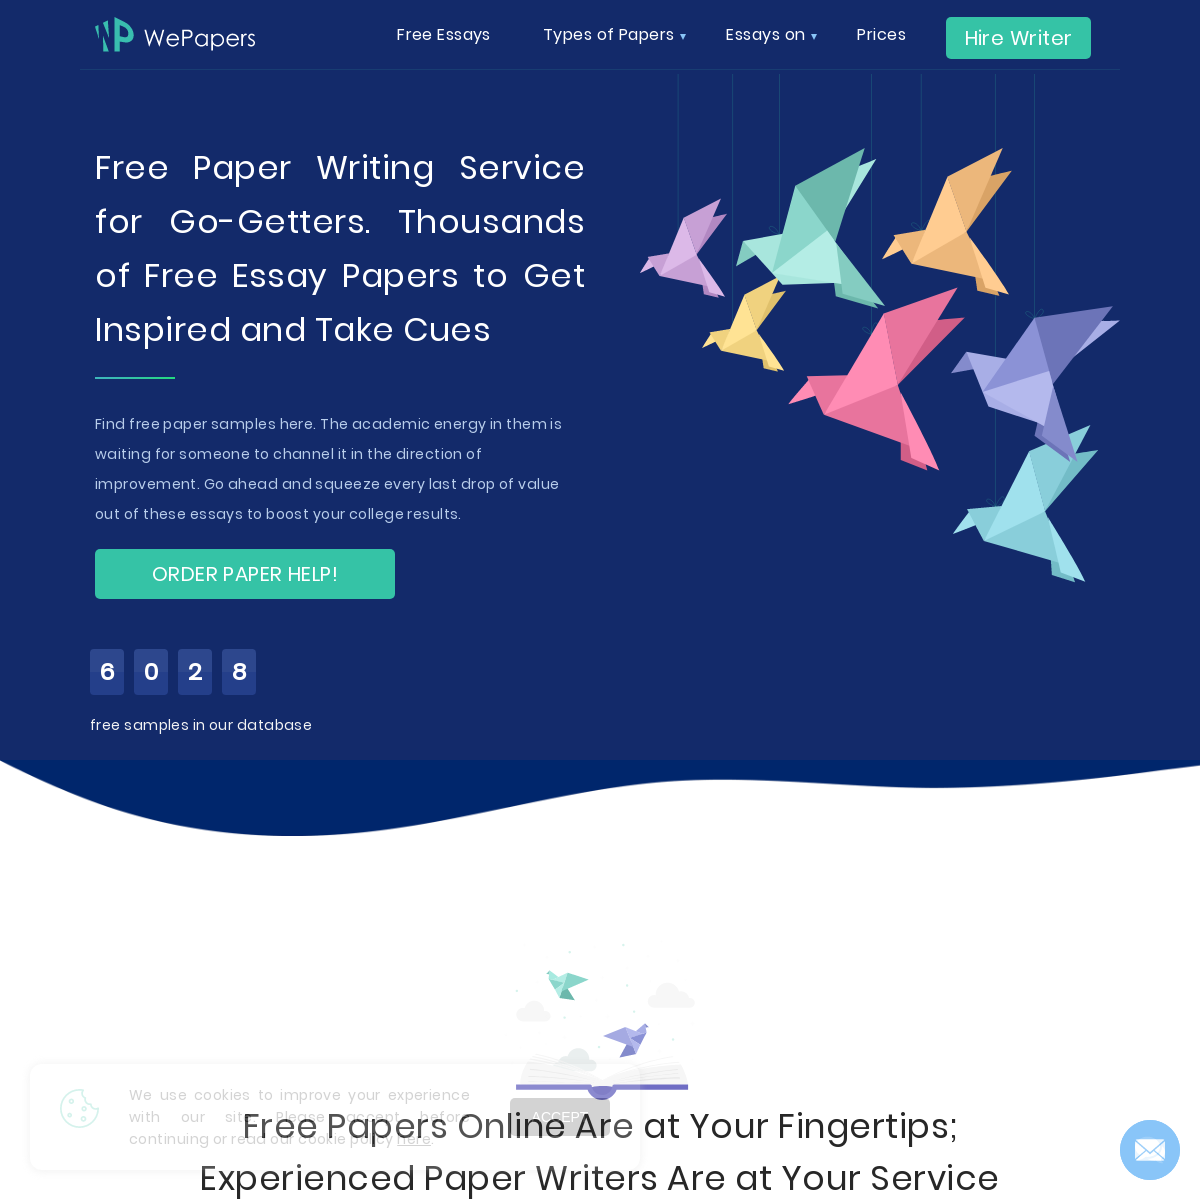 Paper Writer Free Knowledge Base – Free Papers Examples to Follow - WePapers